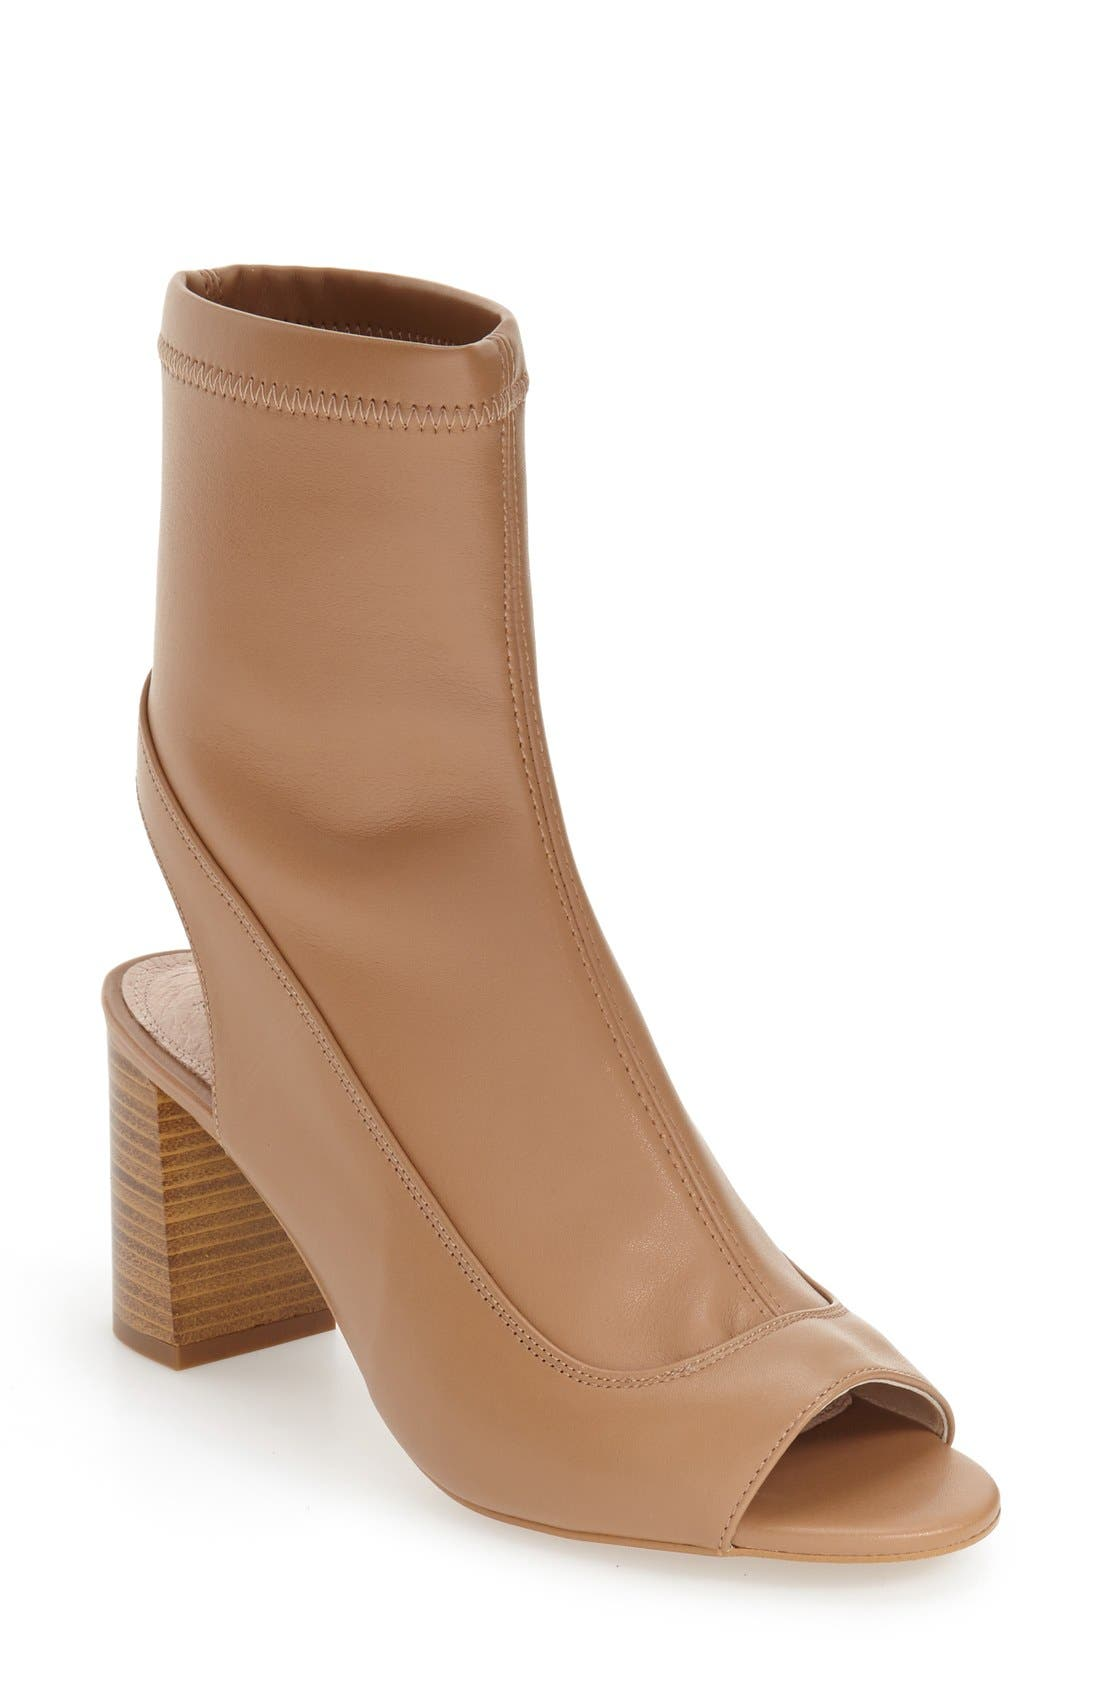 Alternate Image 1 Selected - Topshop 'Melon' Cutout Stretch Bootie (Women)